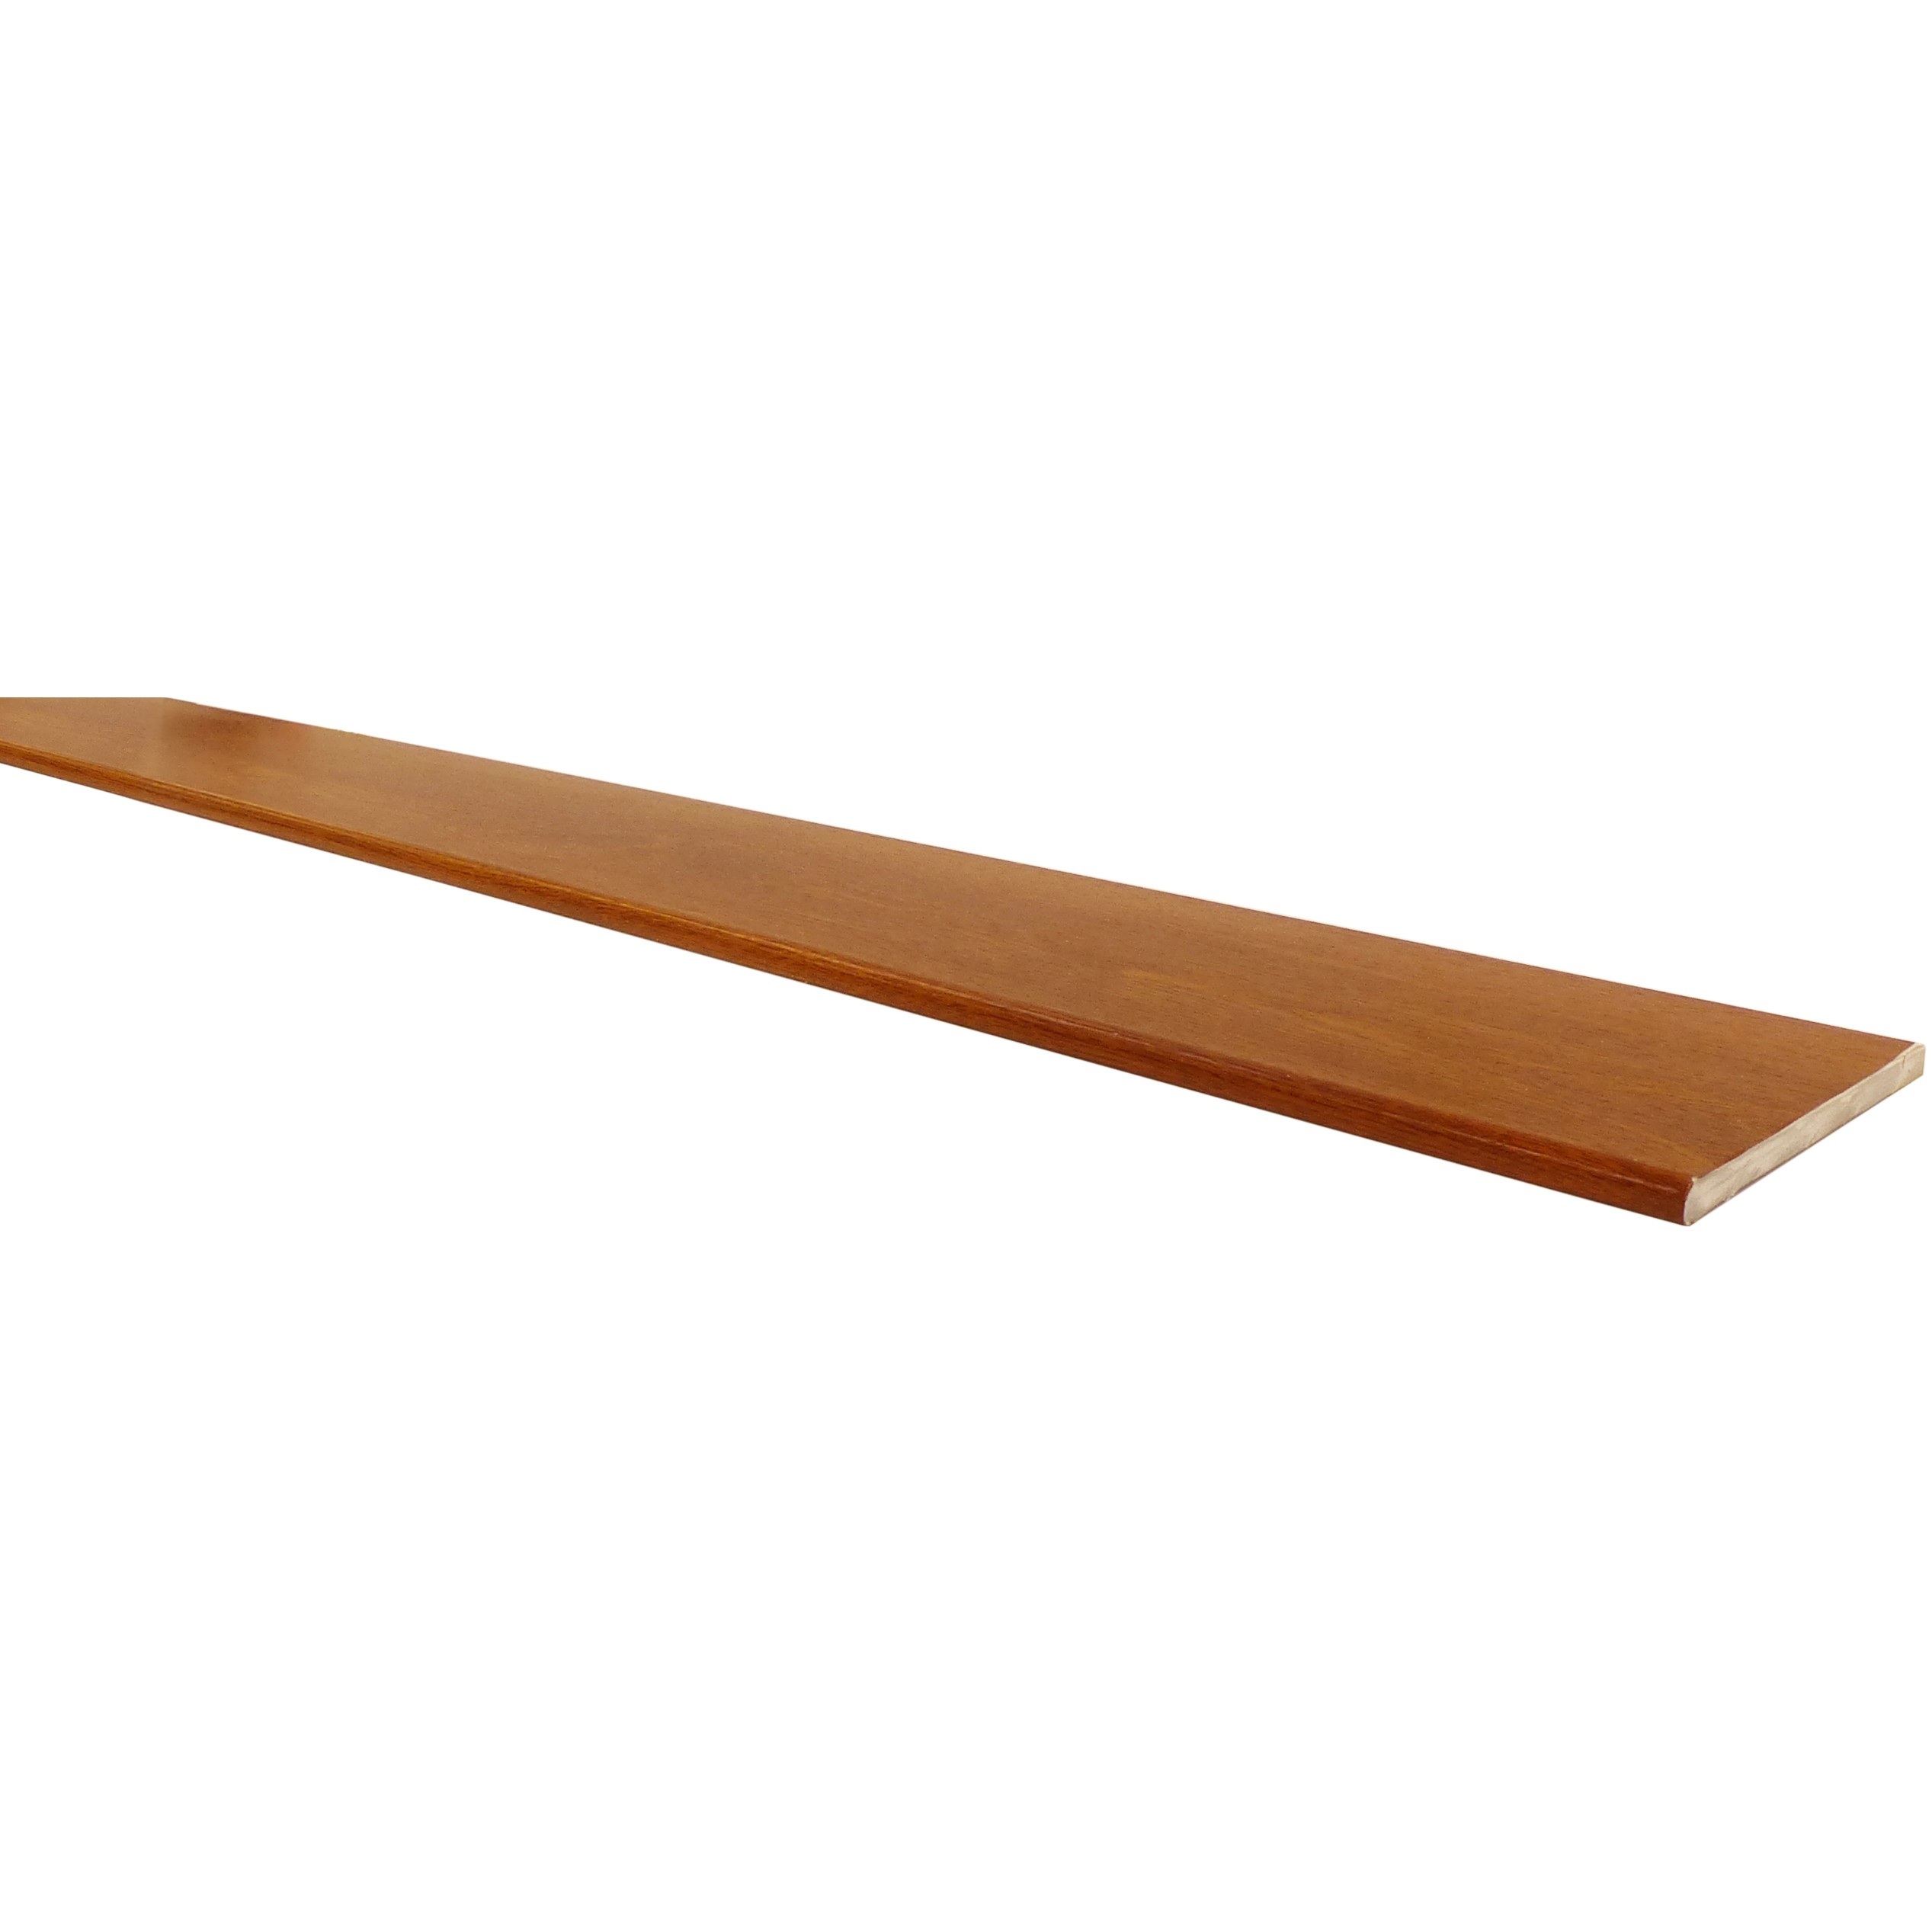 Freefoam 10mm Solid Soffit Board - Woodgrain Light Oak, 200mm, 5 metre